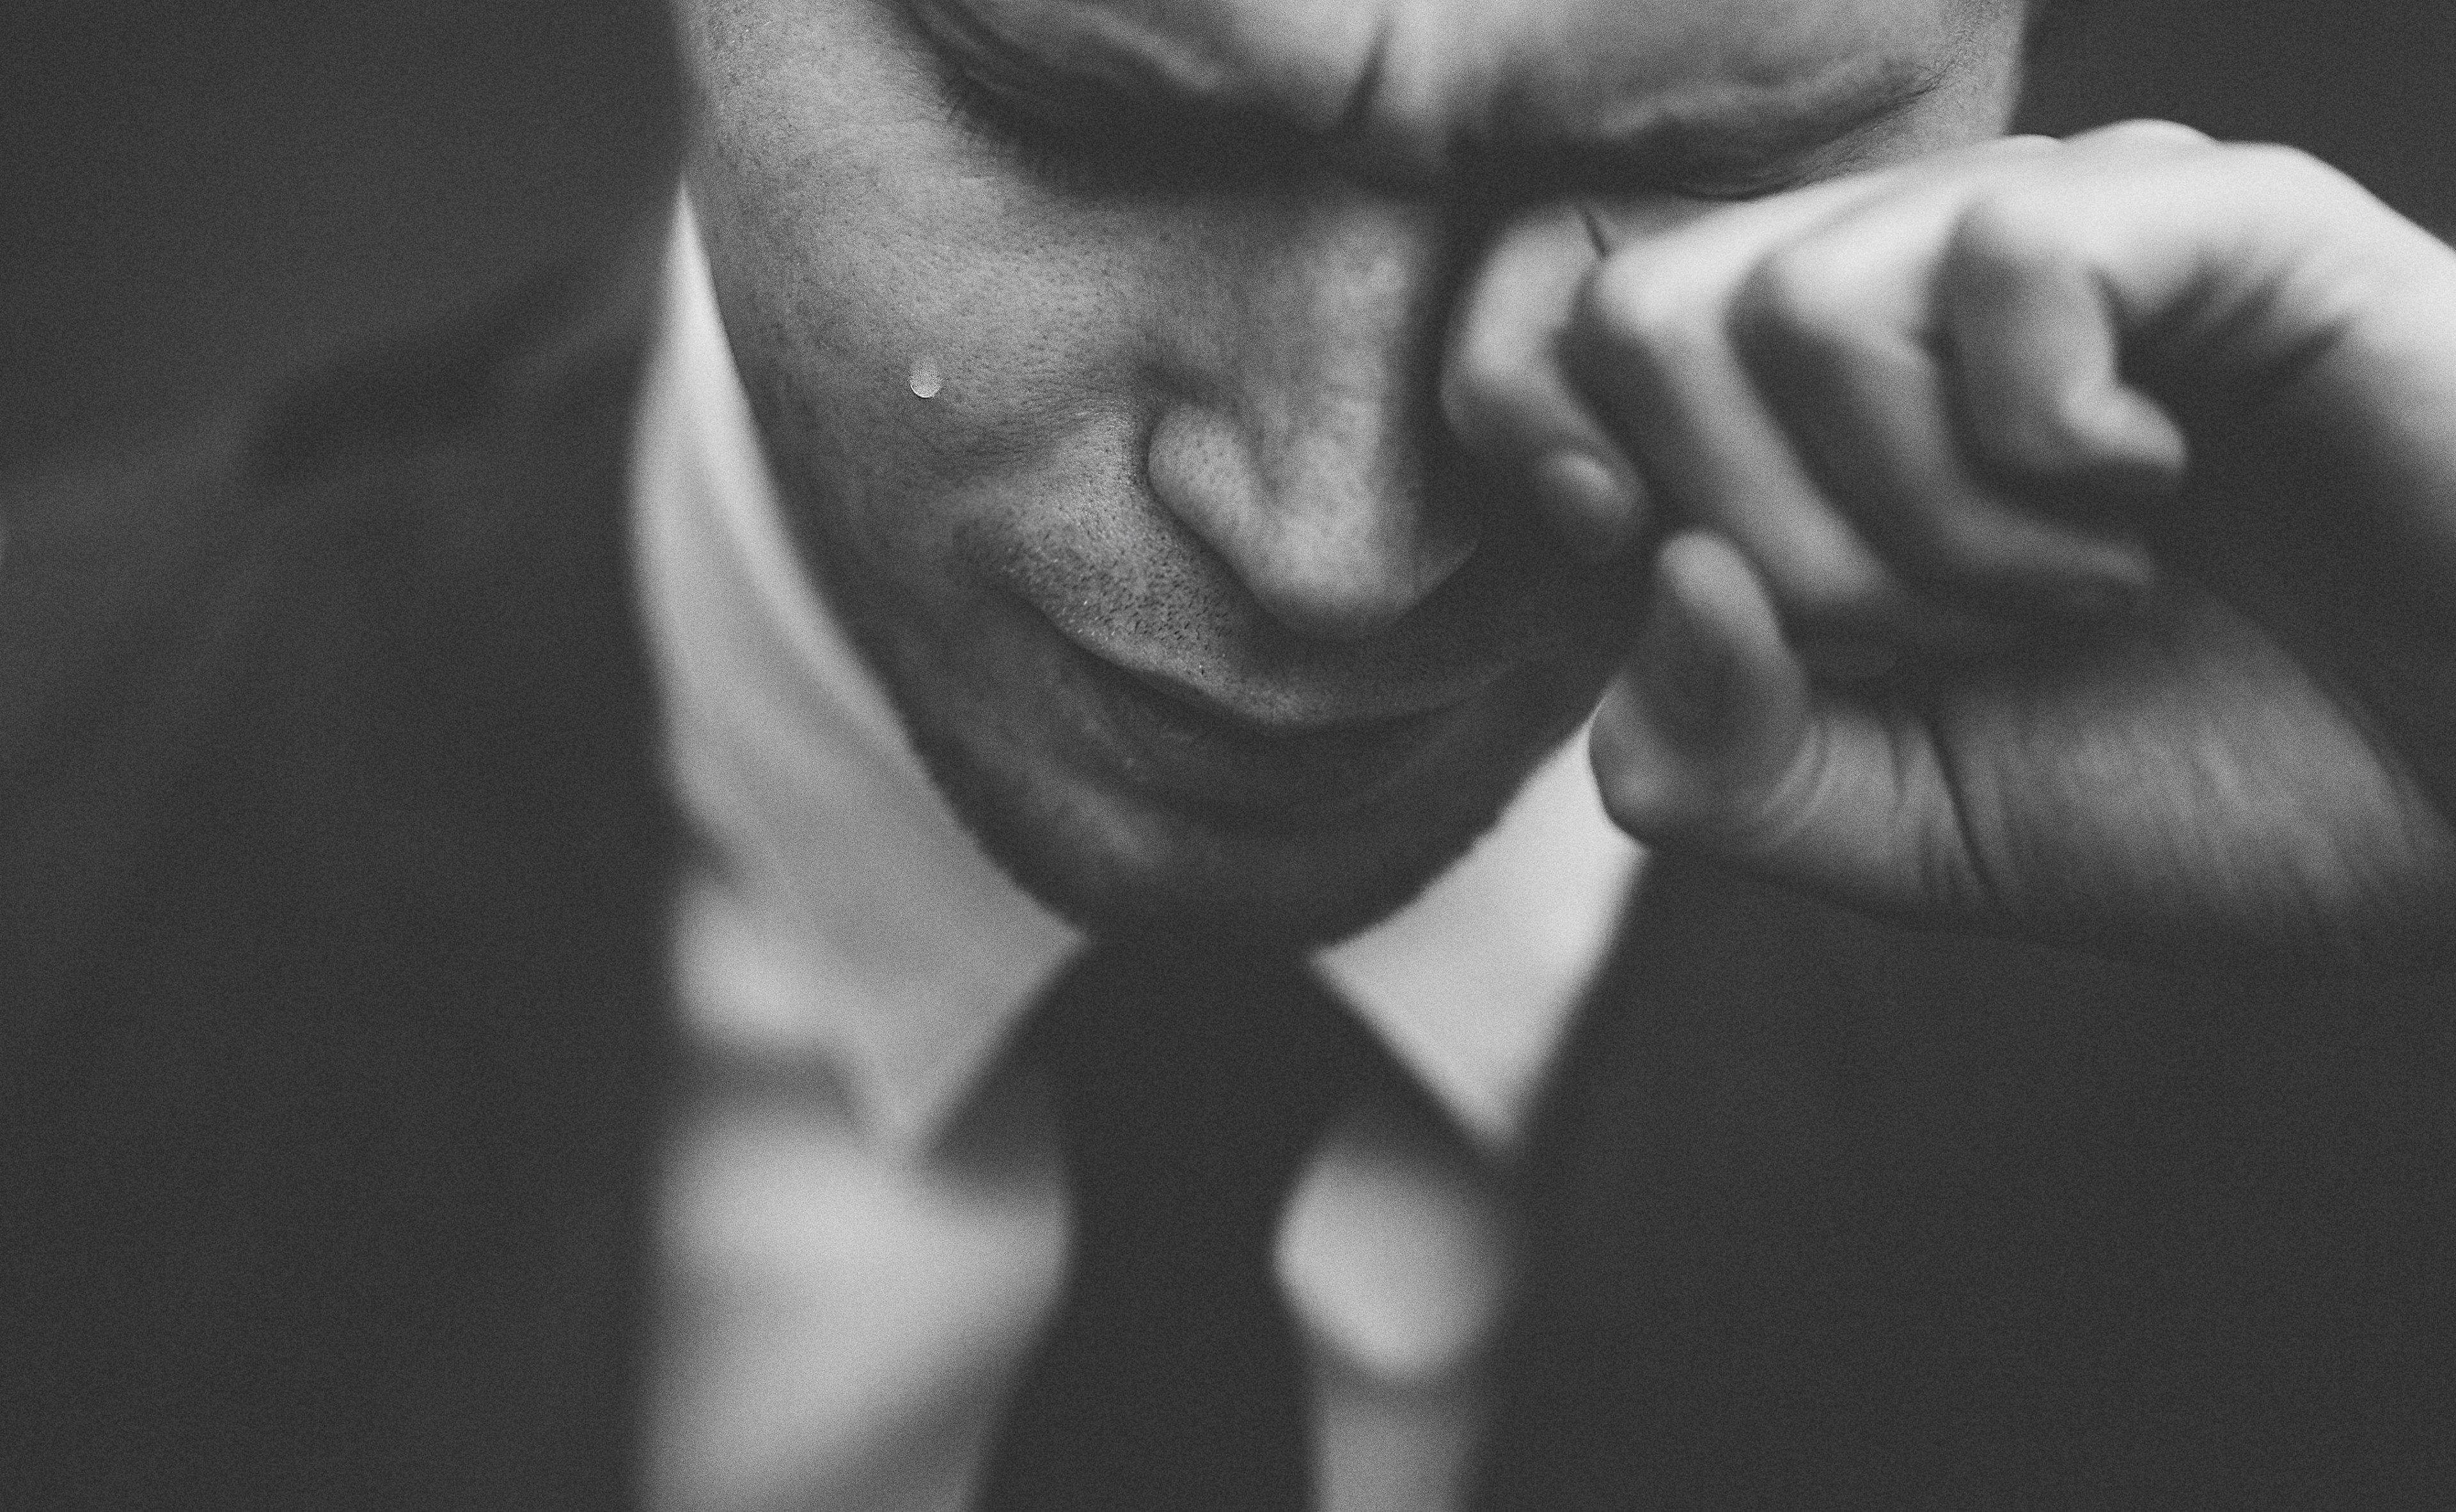 Man narrates how he lost a job because he left 10 minutes before his employer arrived